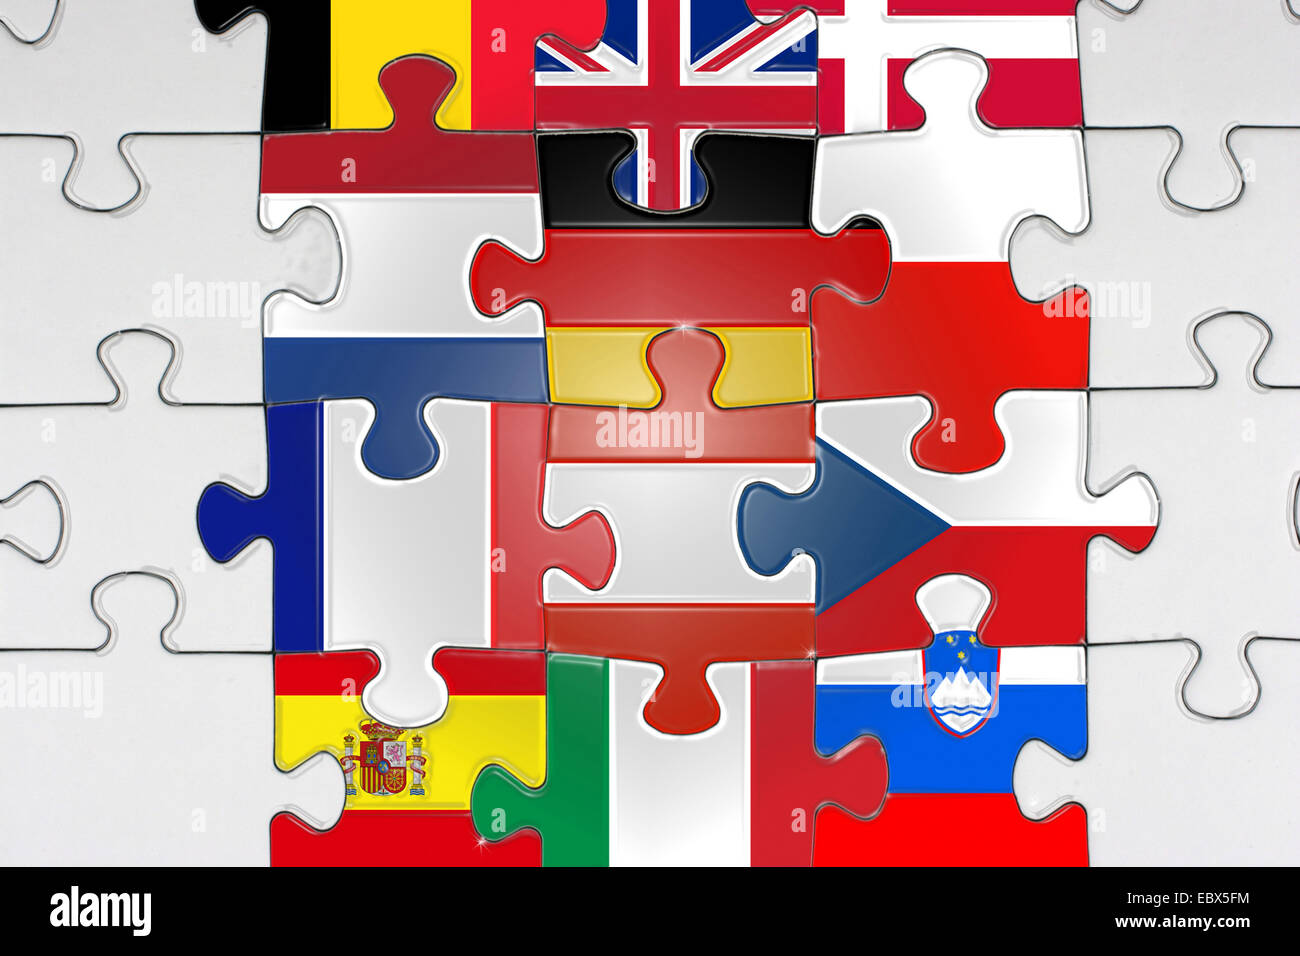 Jigsaw with flags of EU - Stock Image